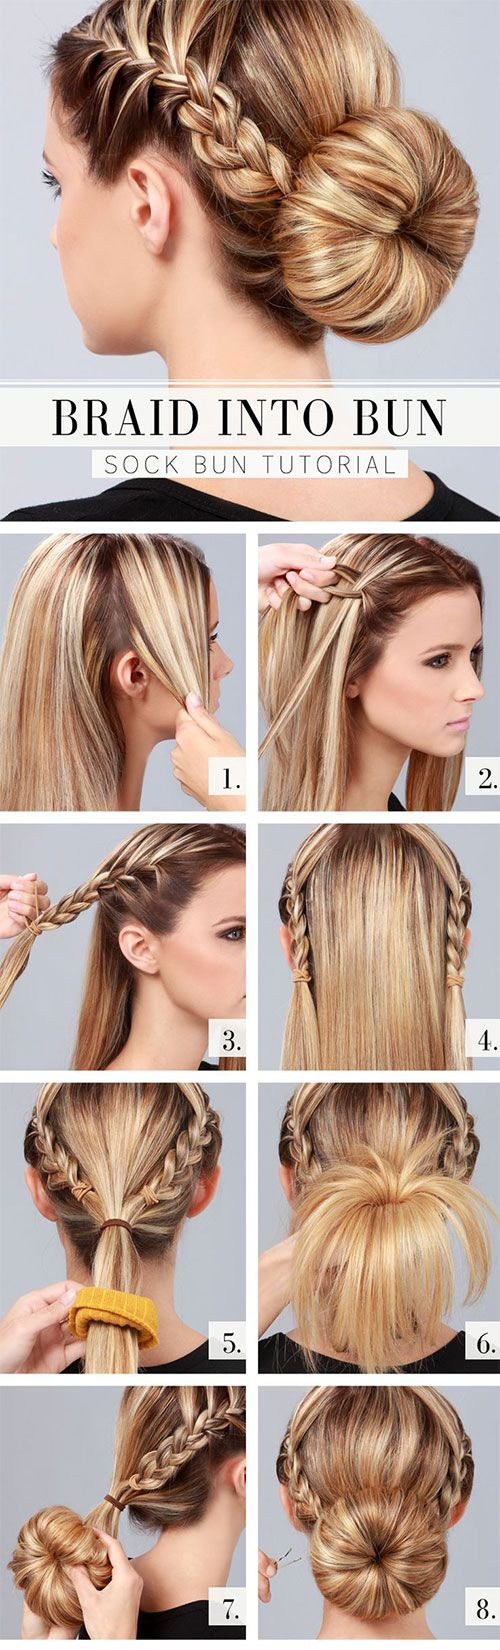 20-Easy-Step-By-Step-Summer-Braids-Style-Tutorials-For-Beginners-2015-6